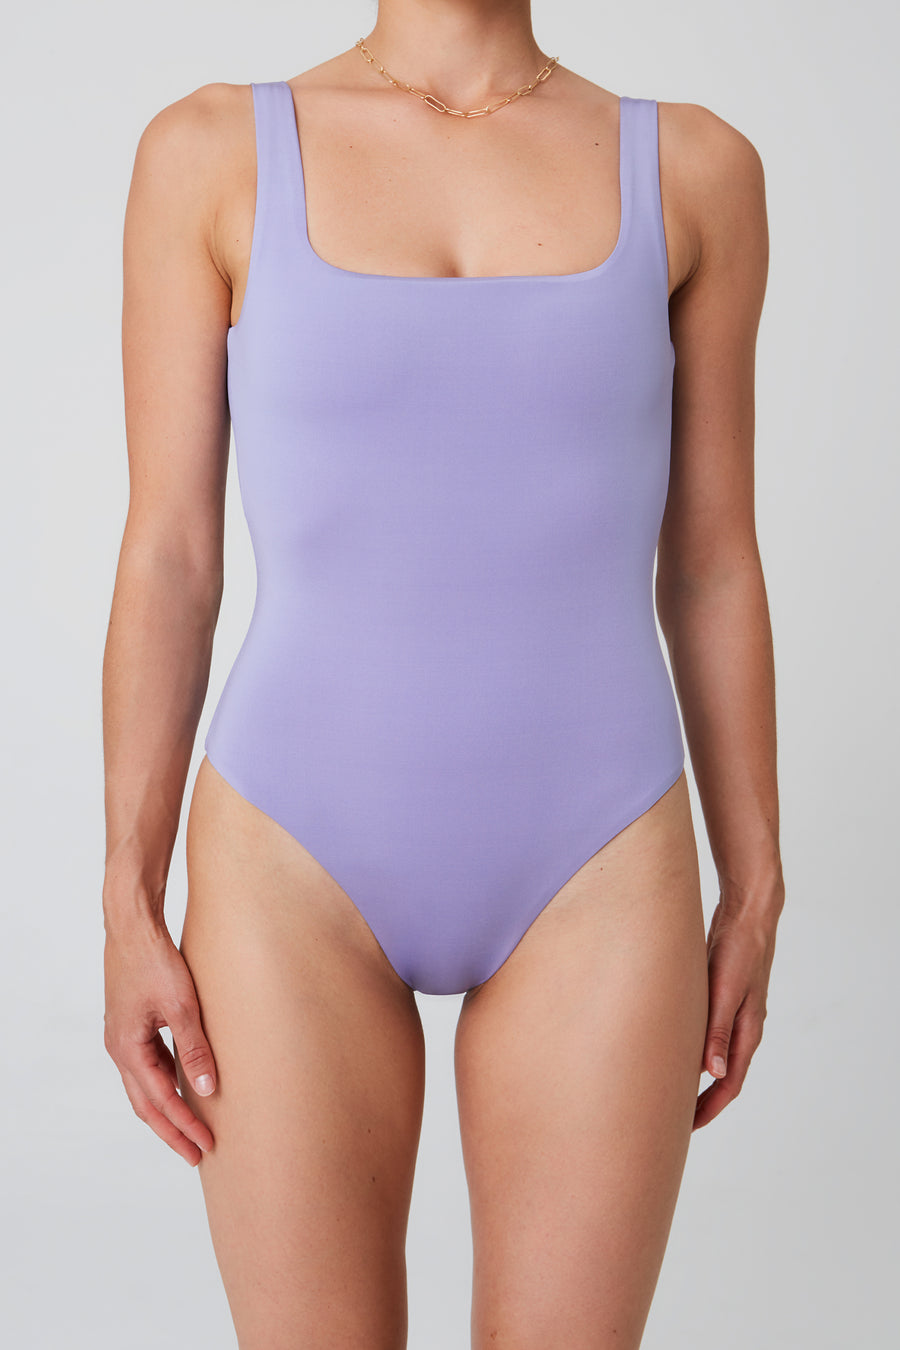 Swimsuit – square, lavender